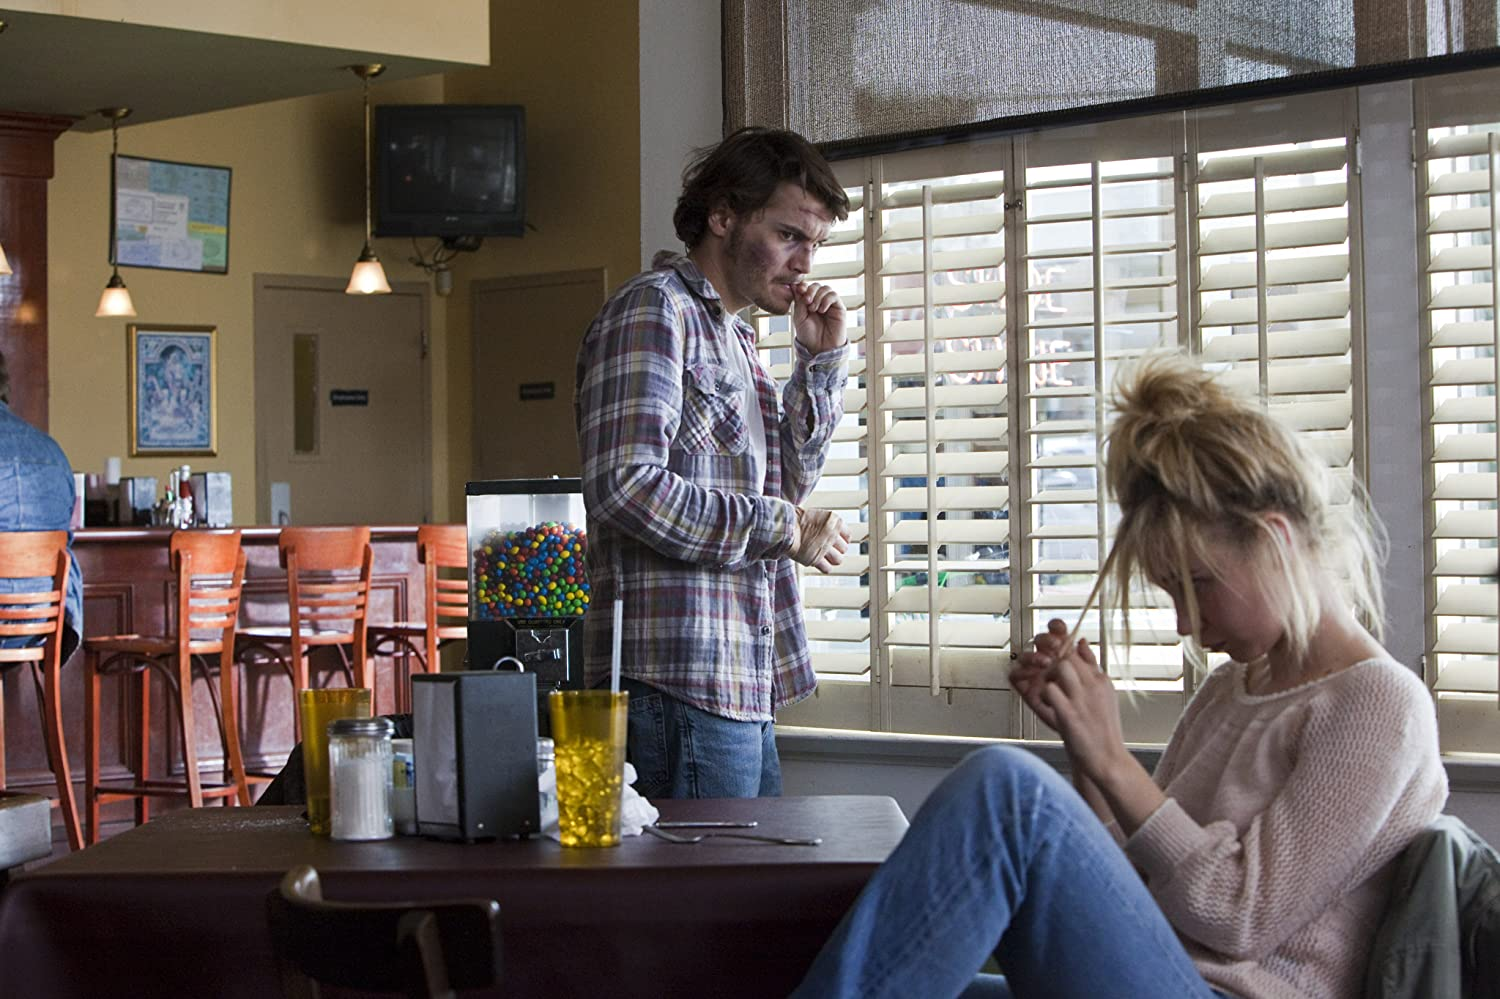 Emile Hirsch and Juno Temple in Killer Joe (2011)